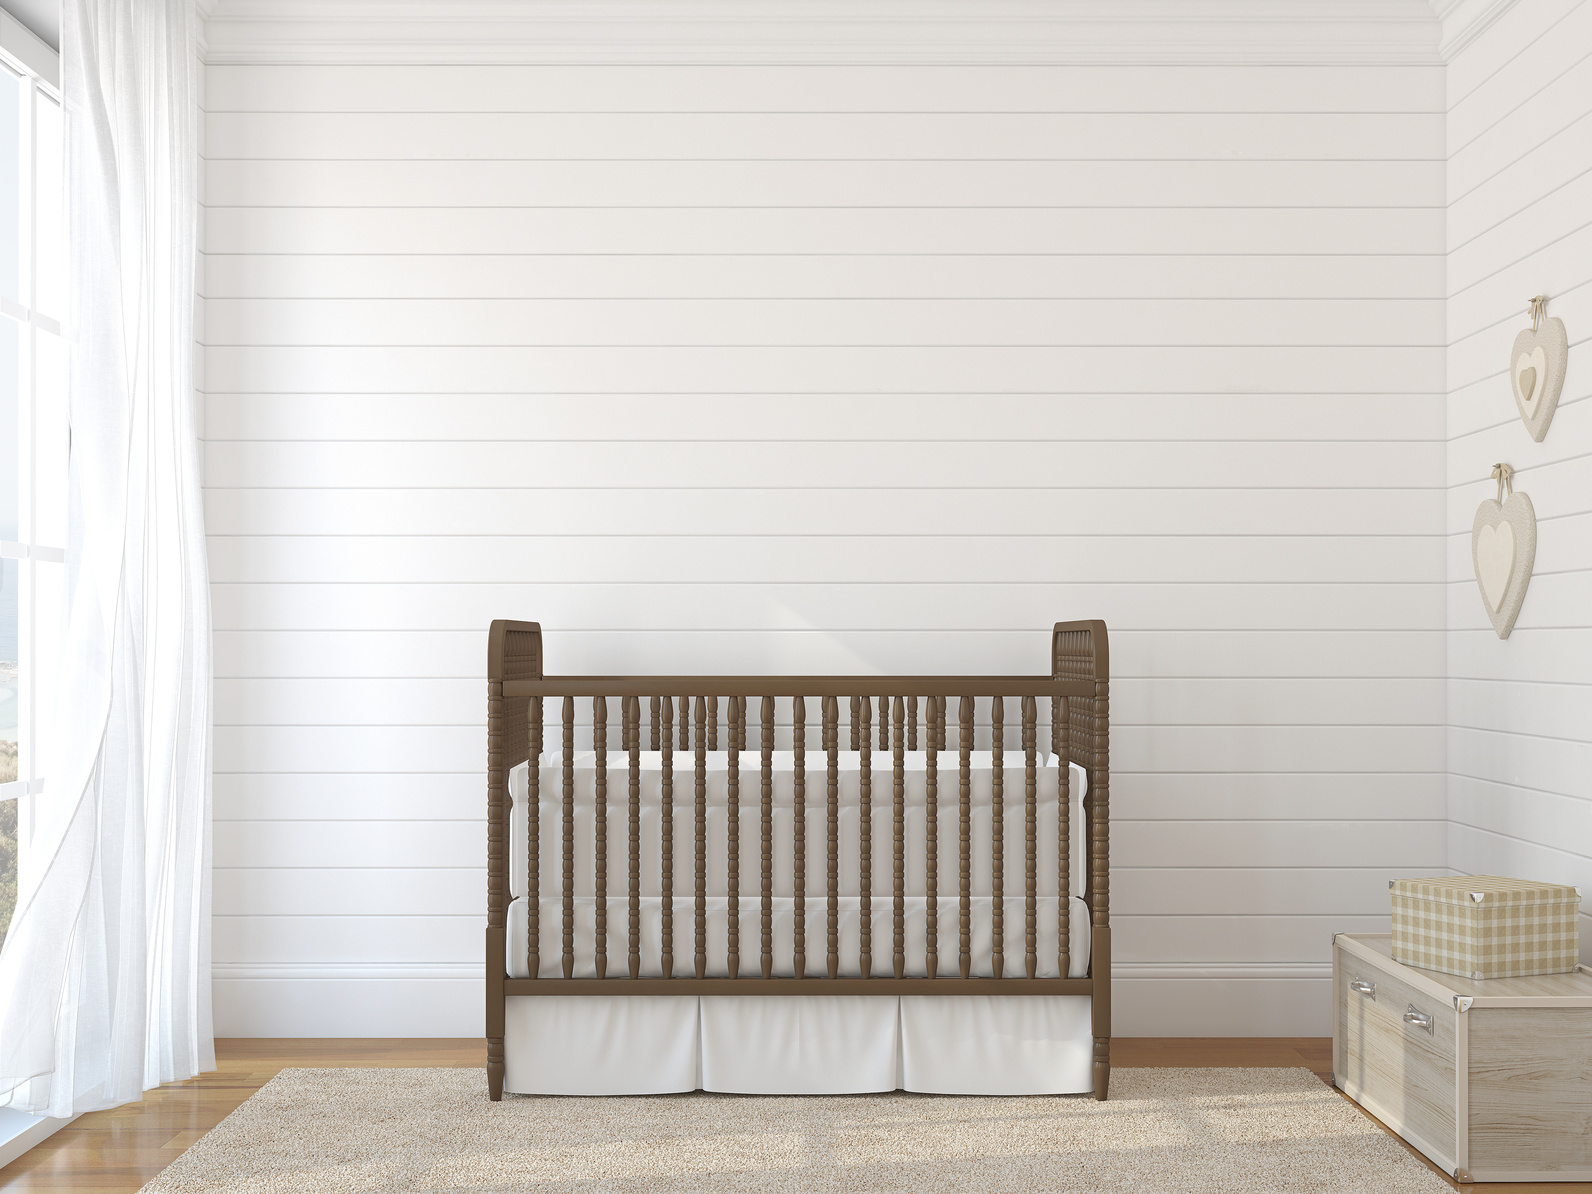 Nursery and Crib Bedding Must Haves